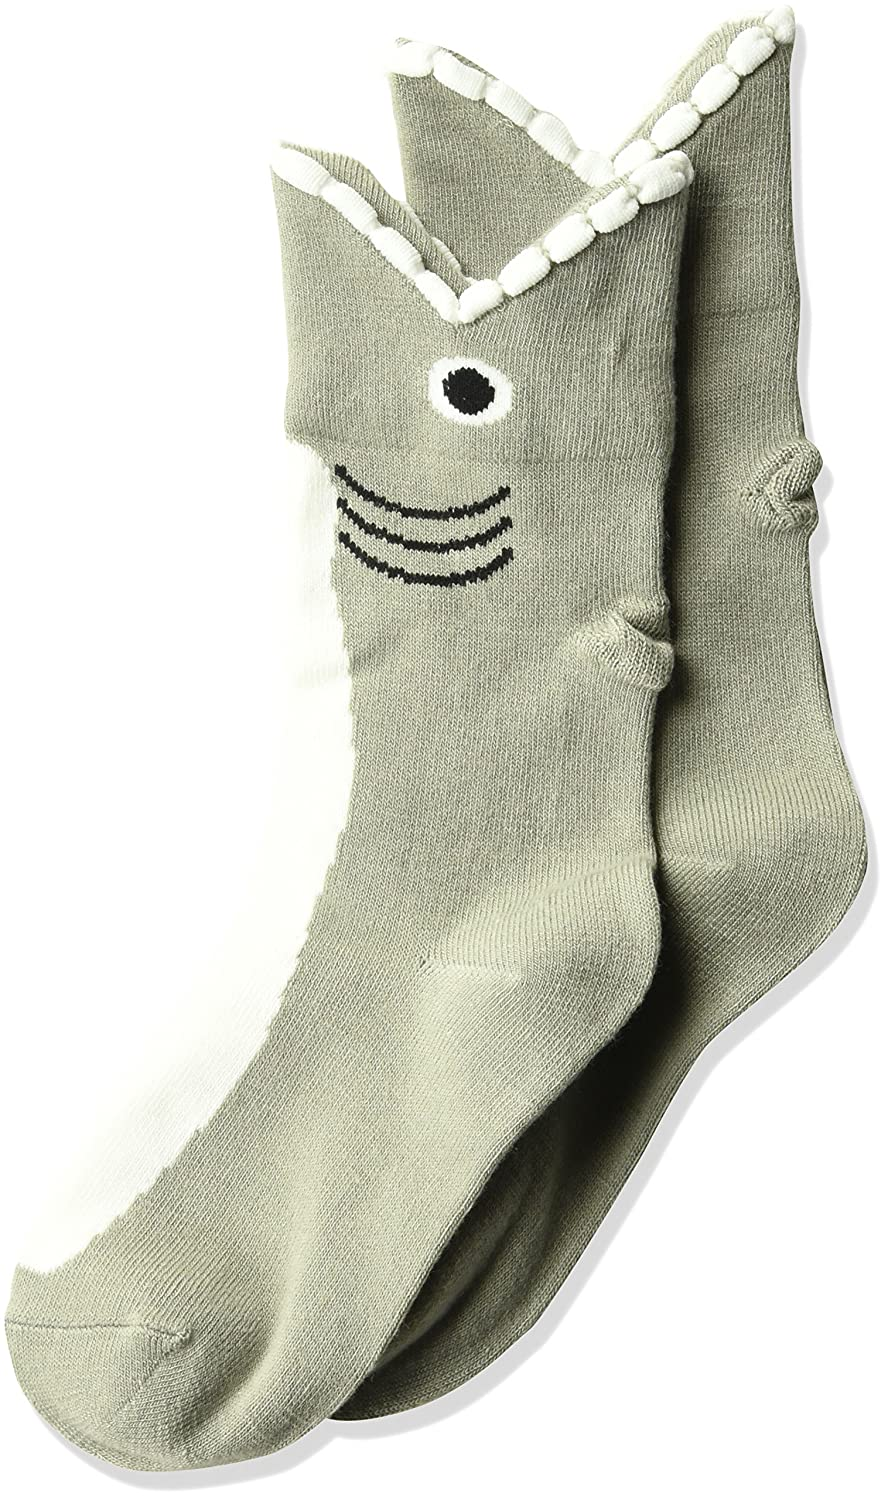 K. Bell Socks unisex-child Big Kids Novelty Wide Mouth Crew Gray Heather Lobster 6-8.5 KBKF15H006-01